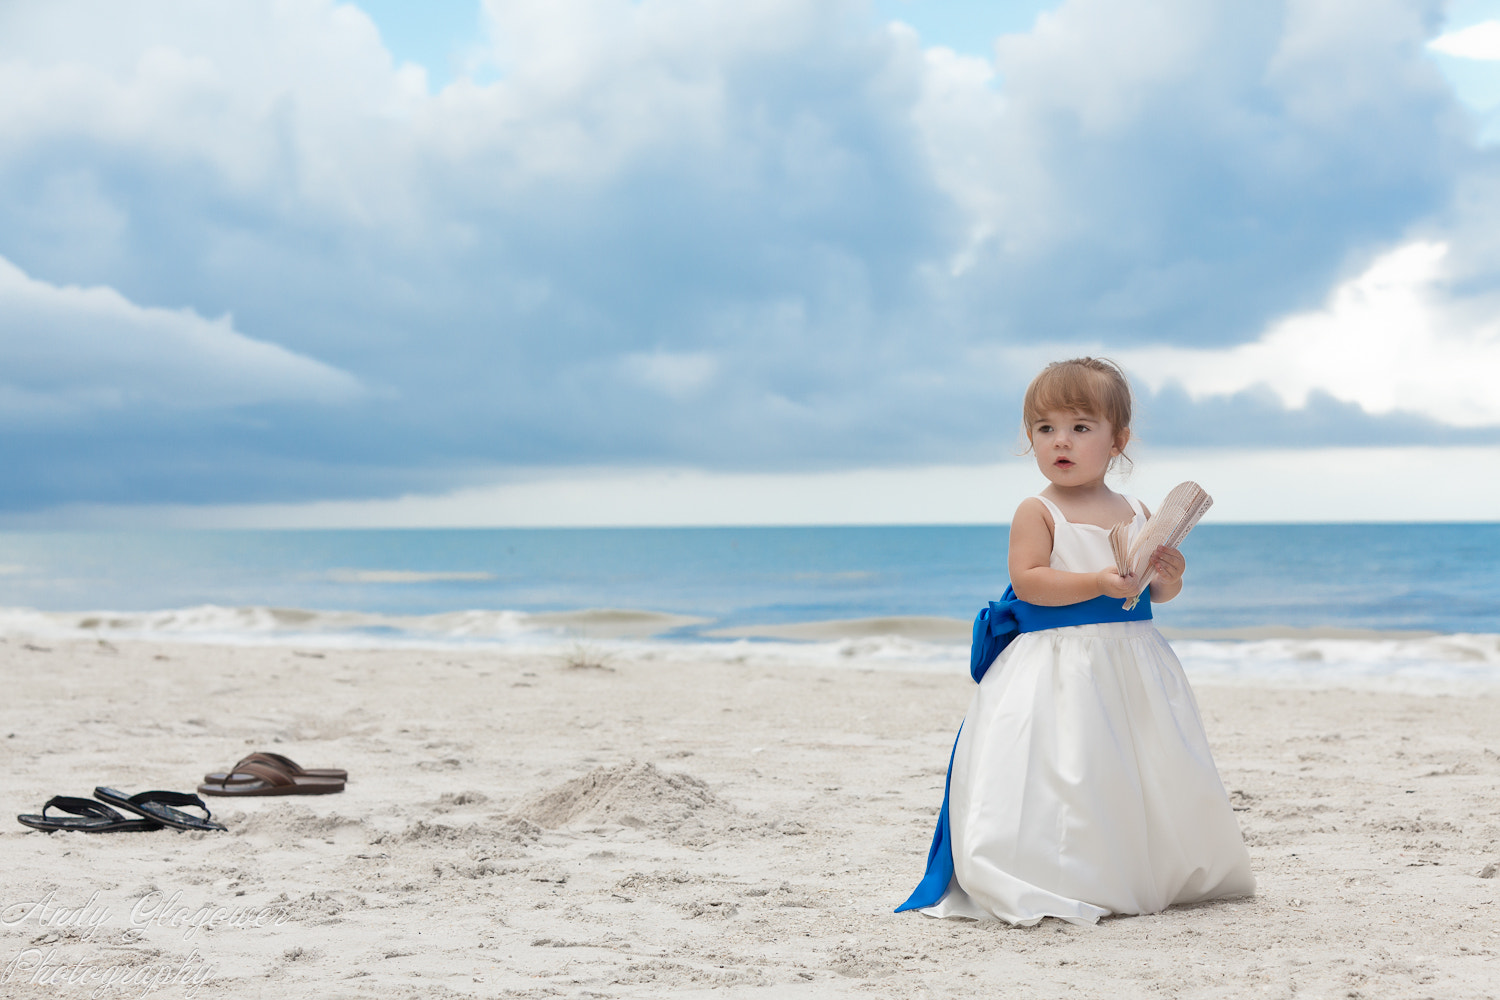 Photograph Beach Angel by Andy Glogower on 500px